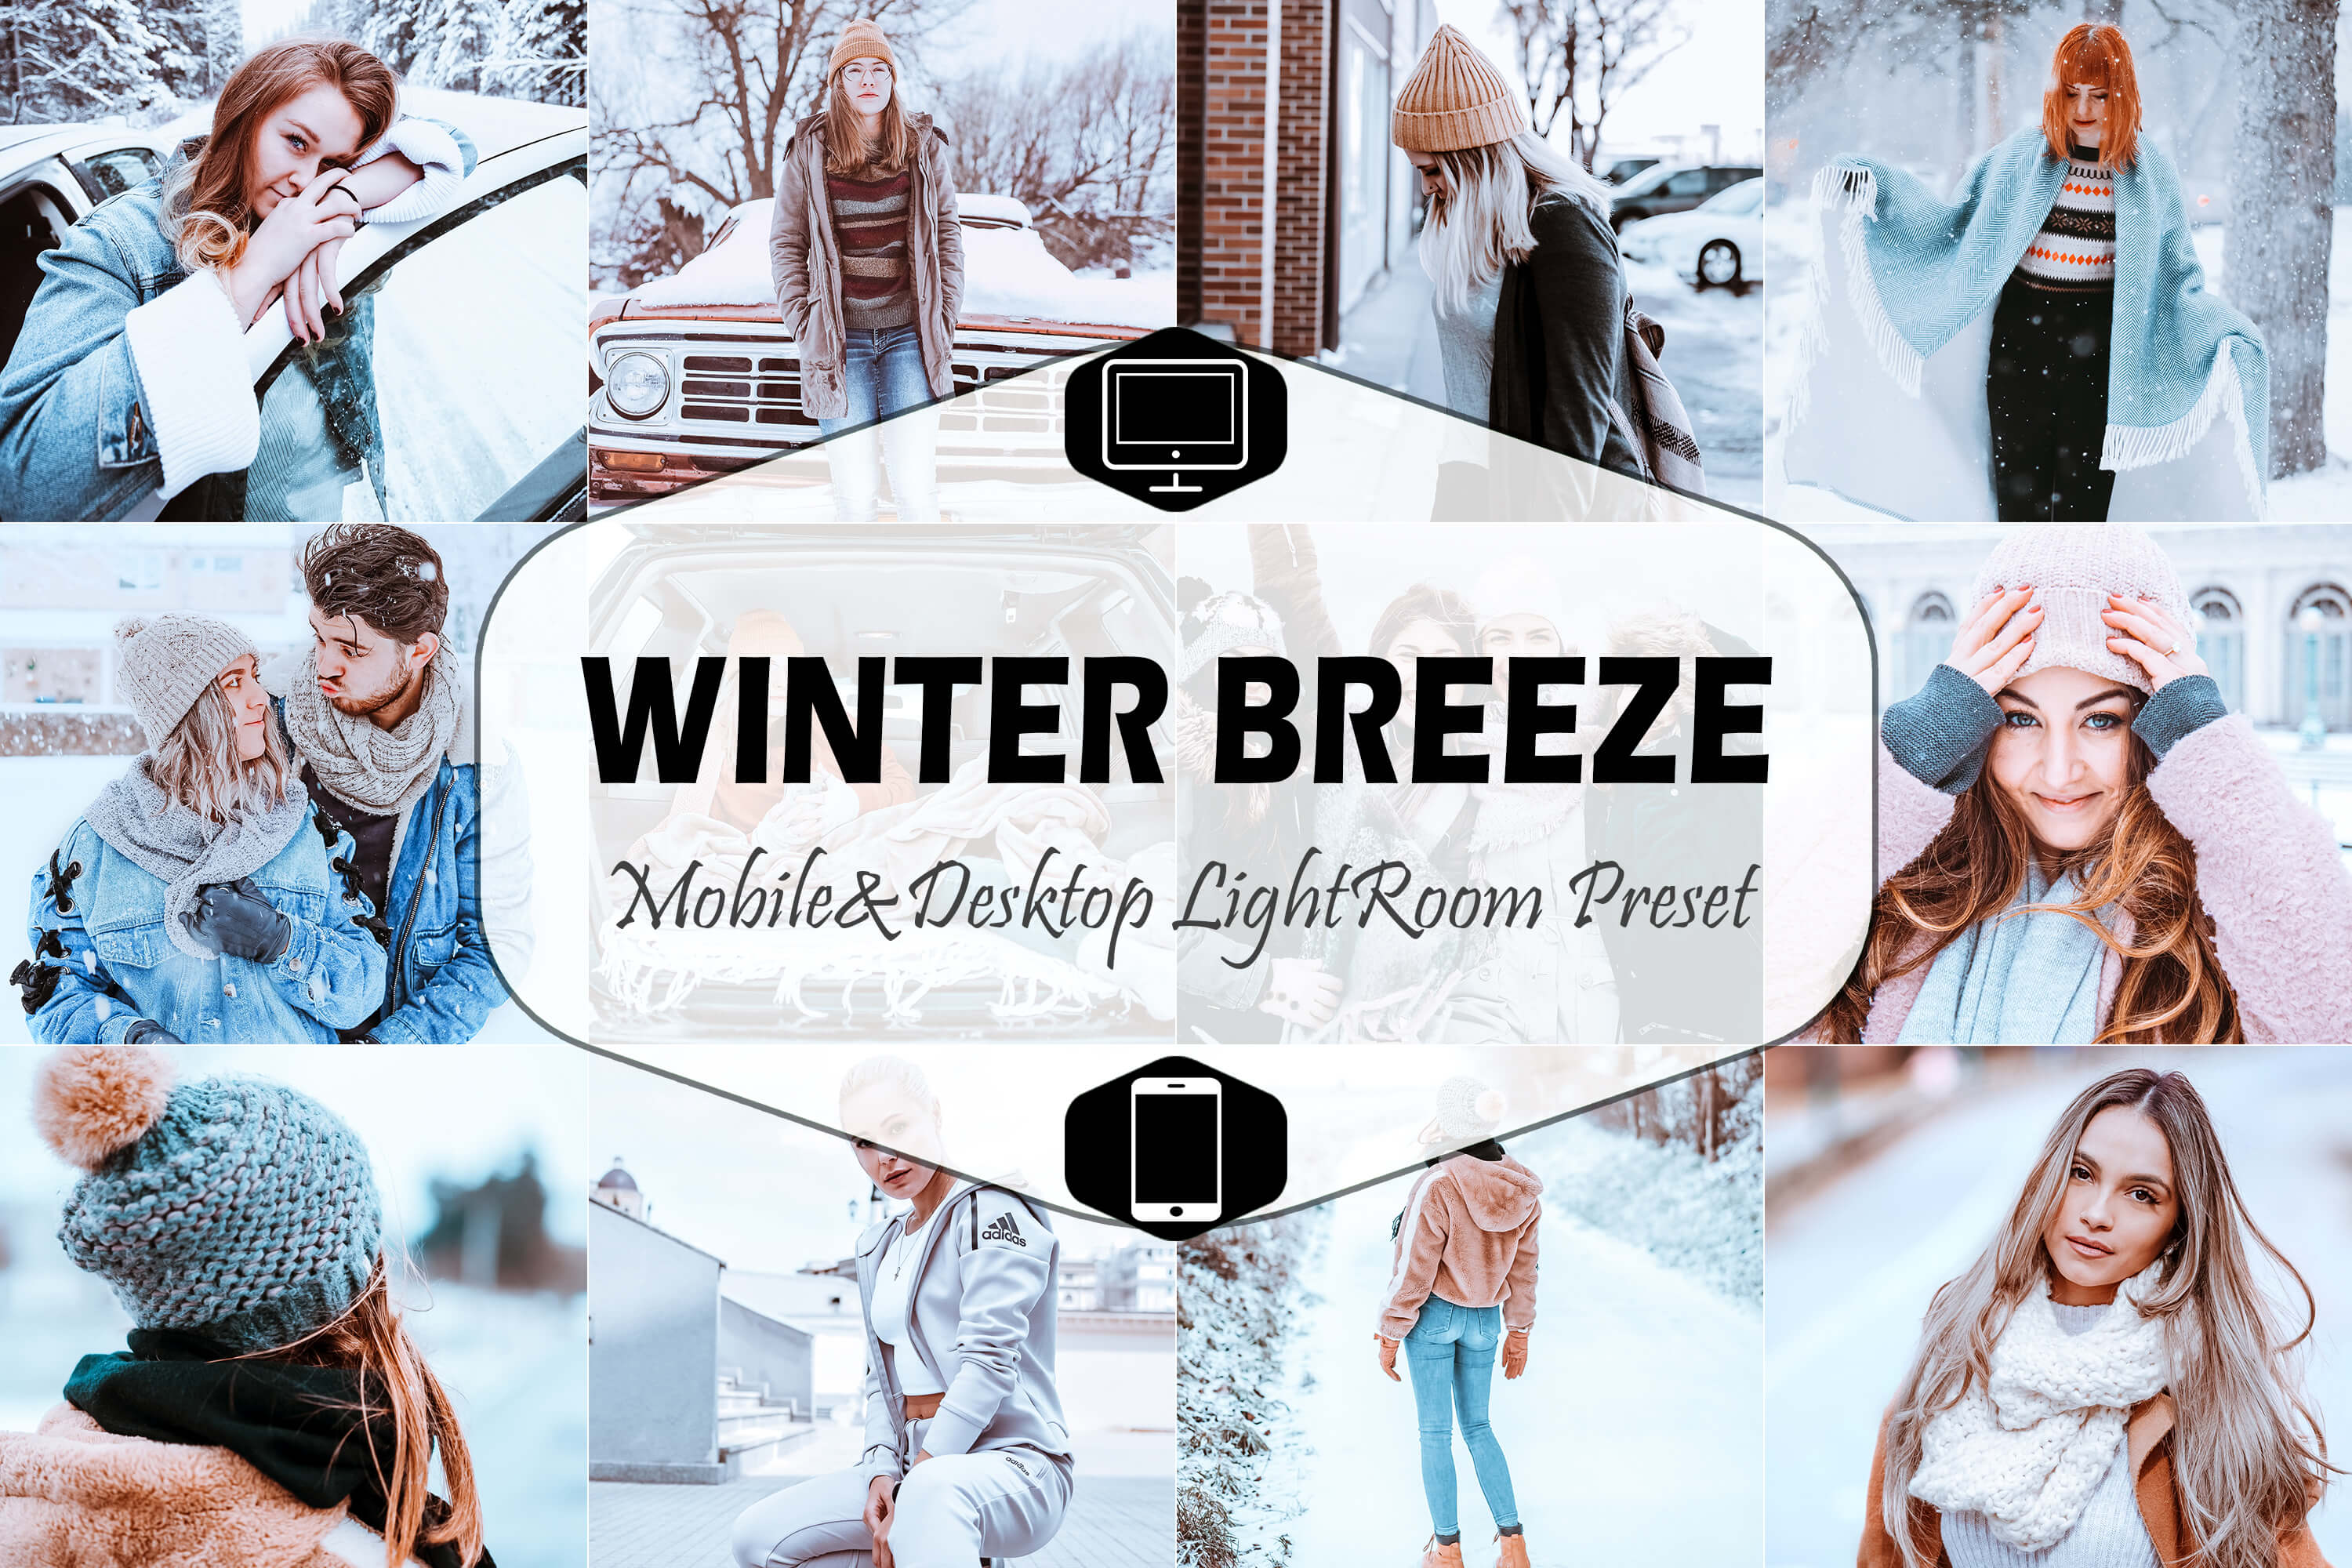 Download Free Winter Breeze Mobile Desktop Lightroom Graphic By Mattte for Cricut Explore, Silhouette and other cutting machines.